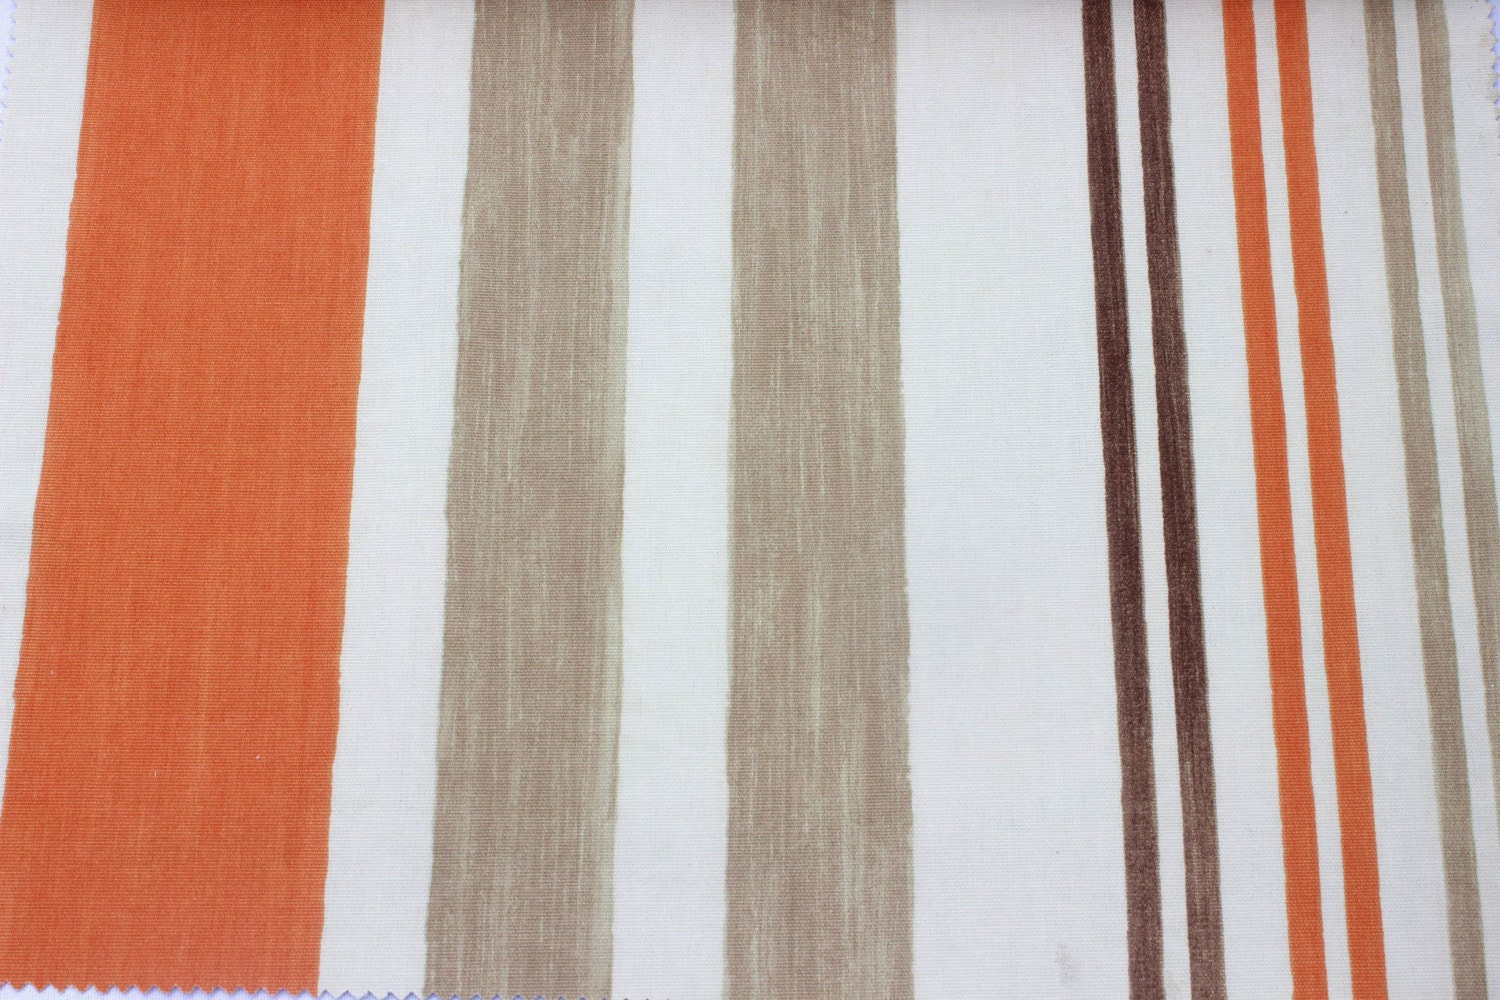 Tangerine Orange Stripe Fabric By The Yard Curtain Fabric